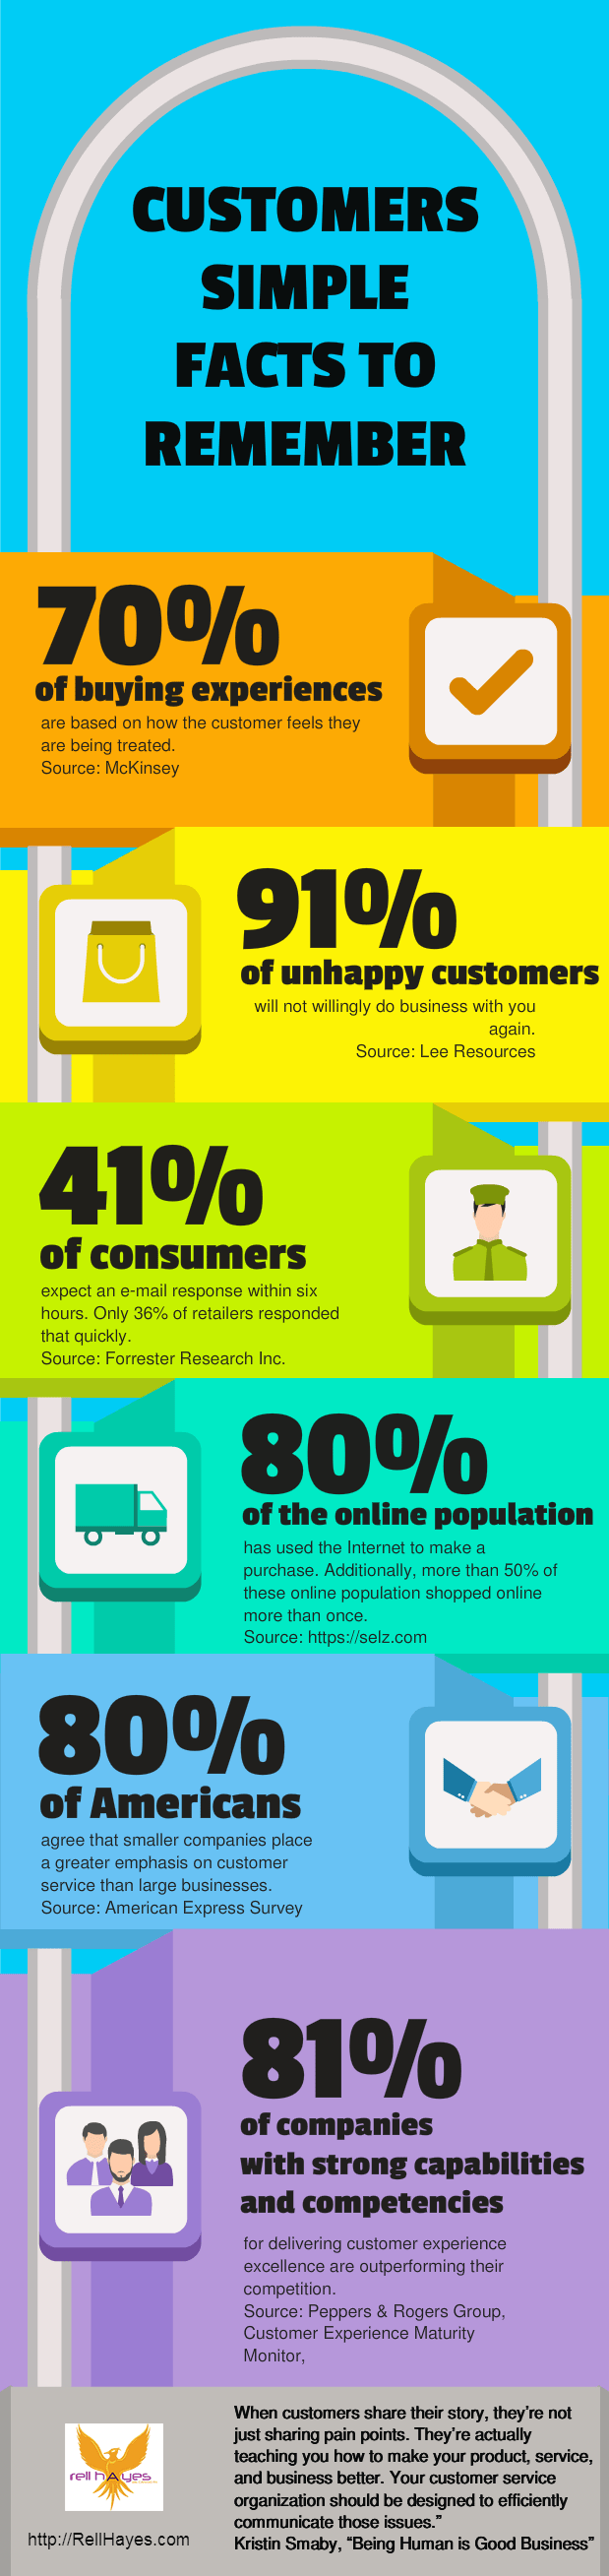 Customers Facts Infographic